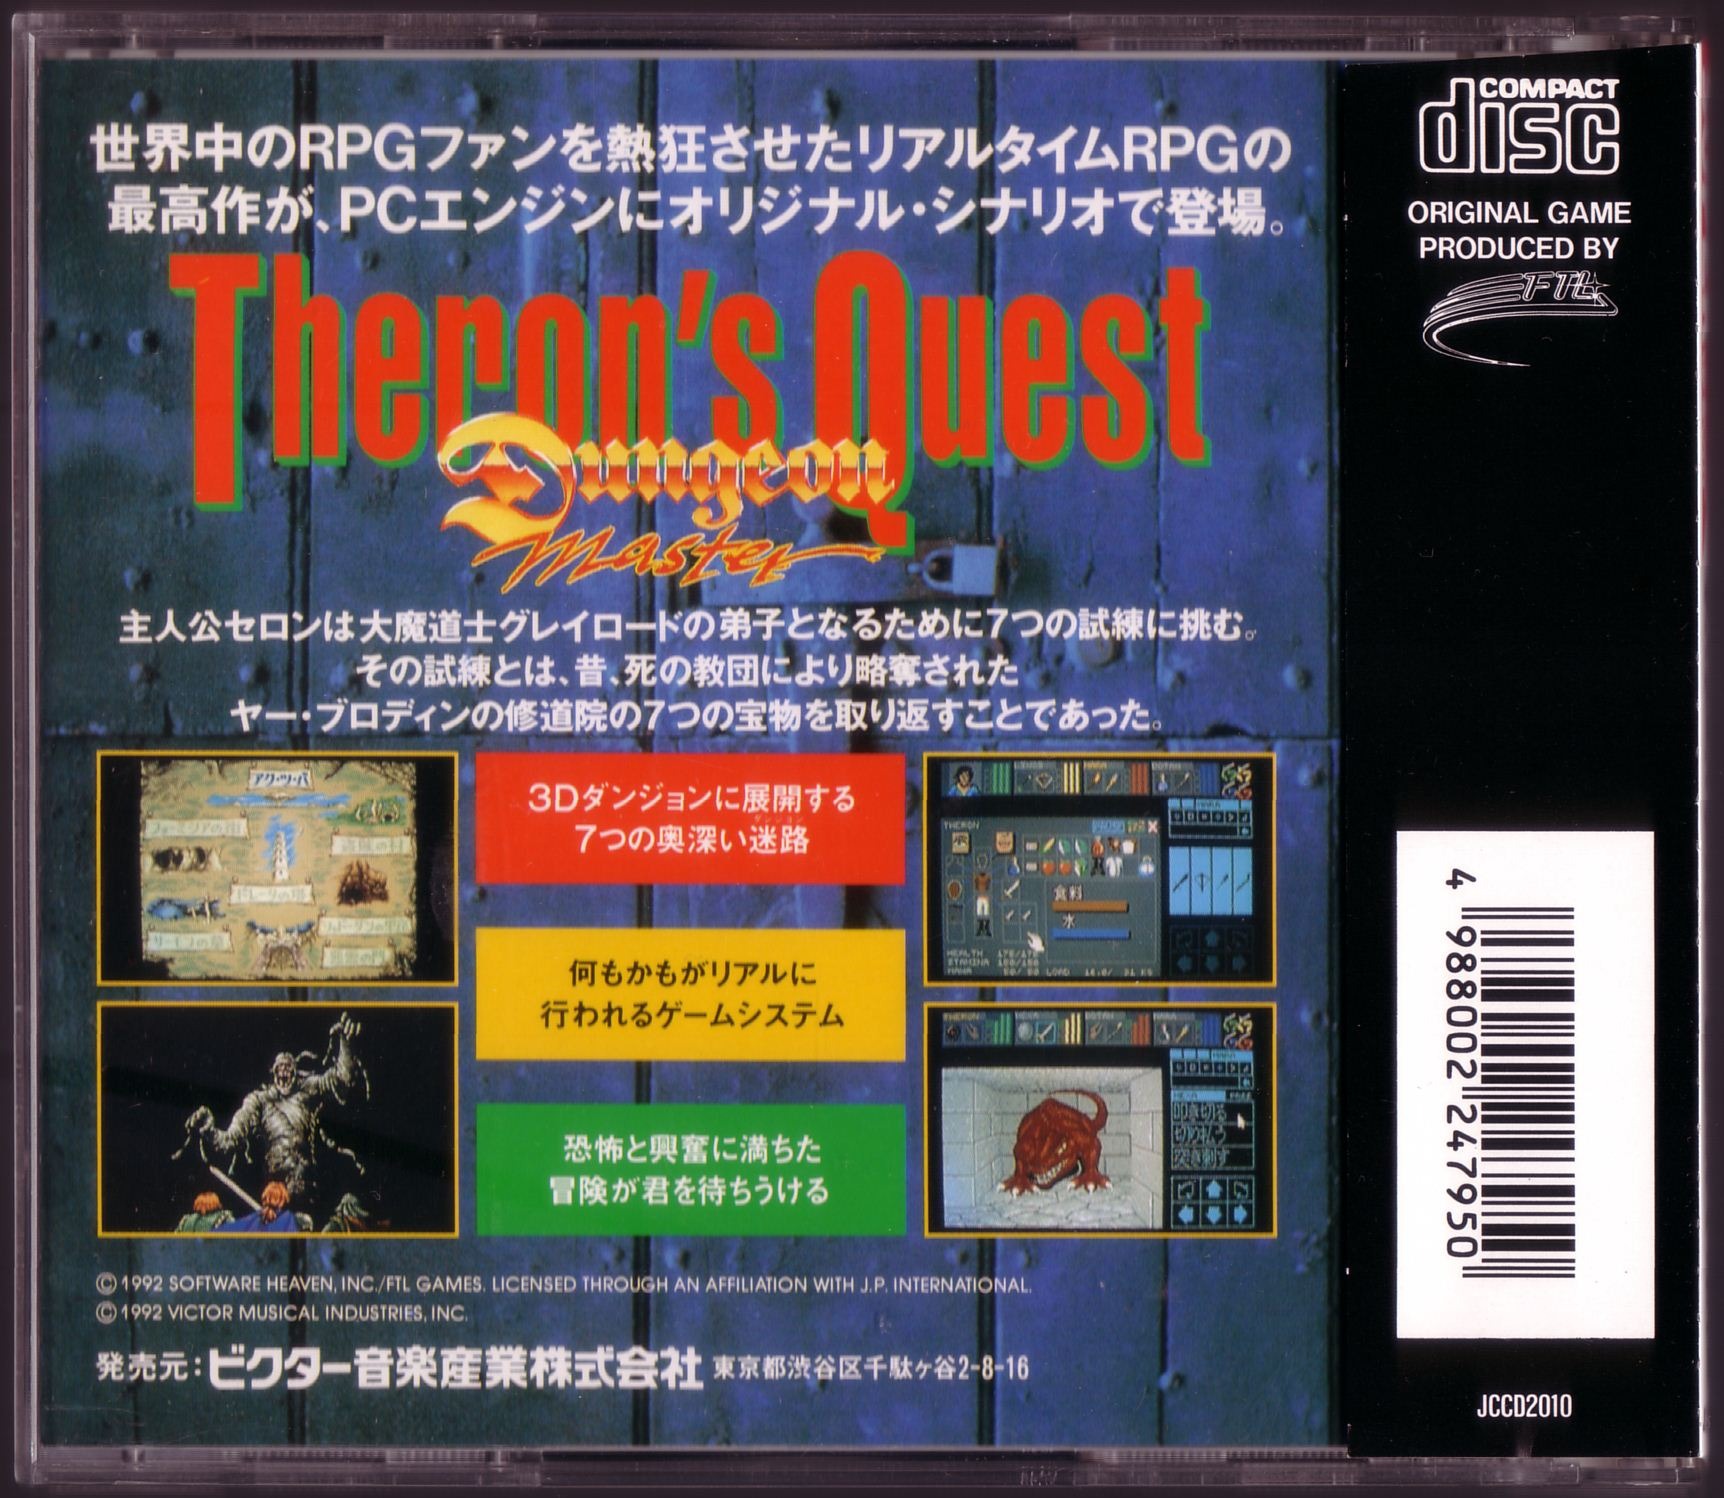 Game - Theron's Quest - JP - PC Engine - Box - Back - Scan